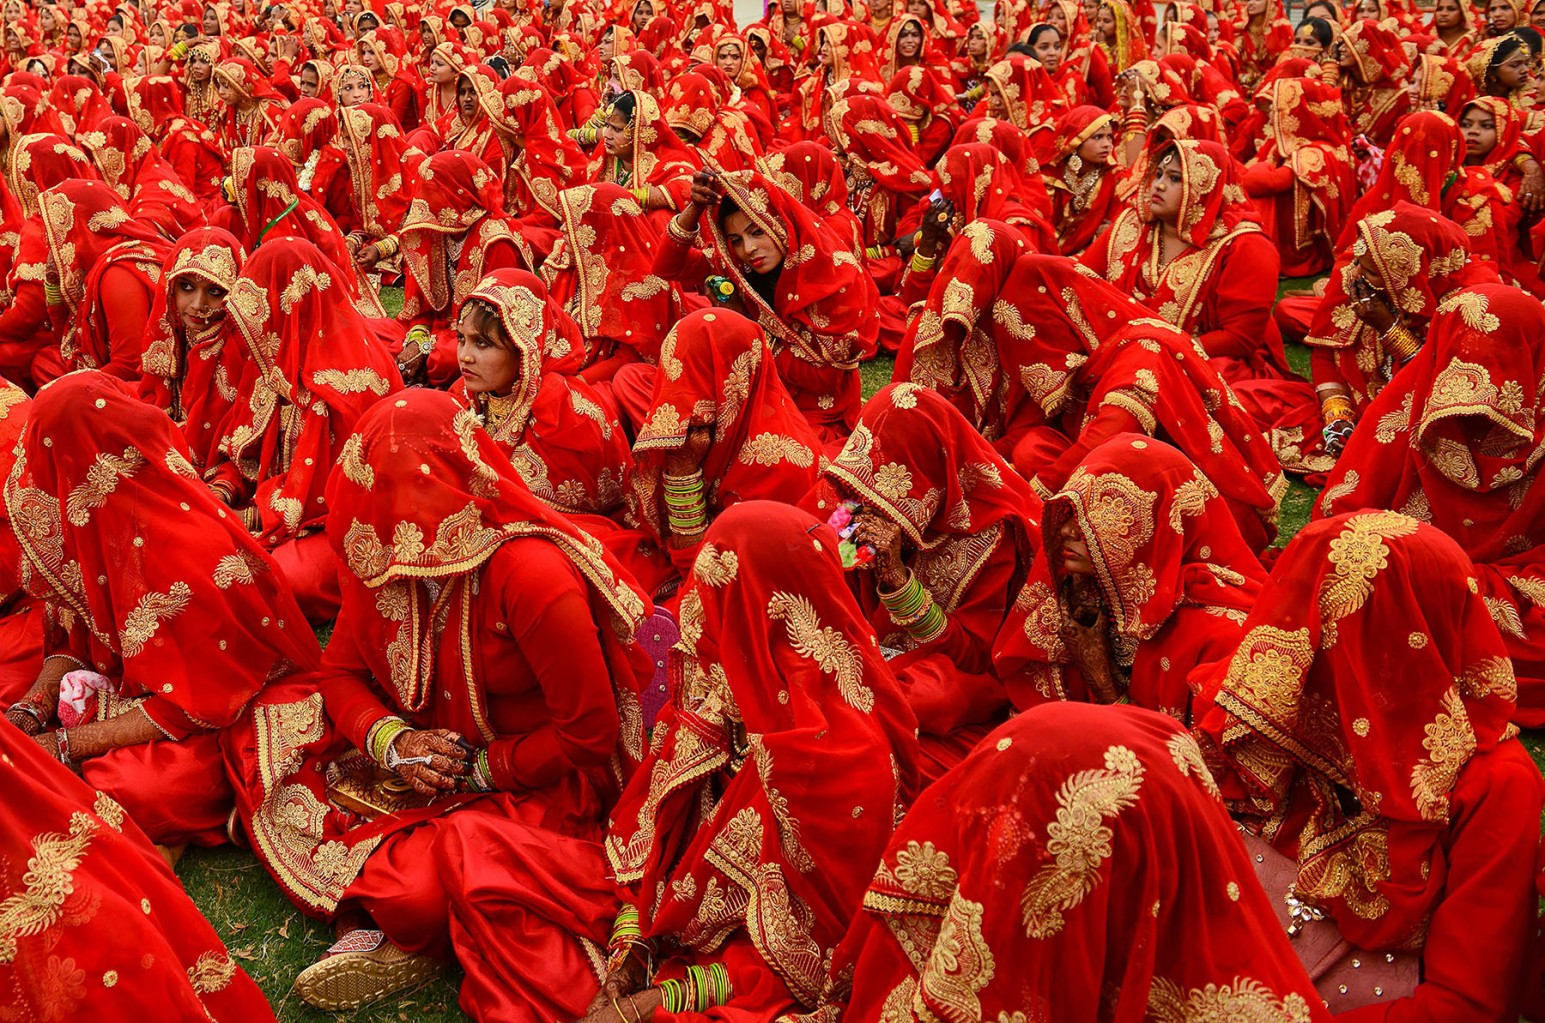 Indian Muslim brides-to-be gather as they participate in a mass wedding ceremony in Ahmedabad on March 3. SAM PANTHAKY/AFP/Getty Images